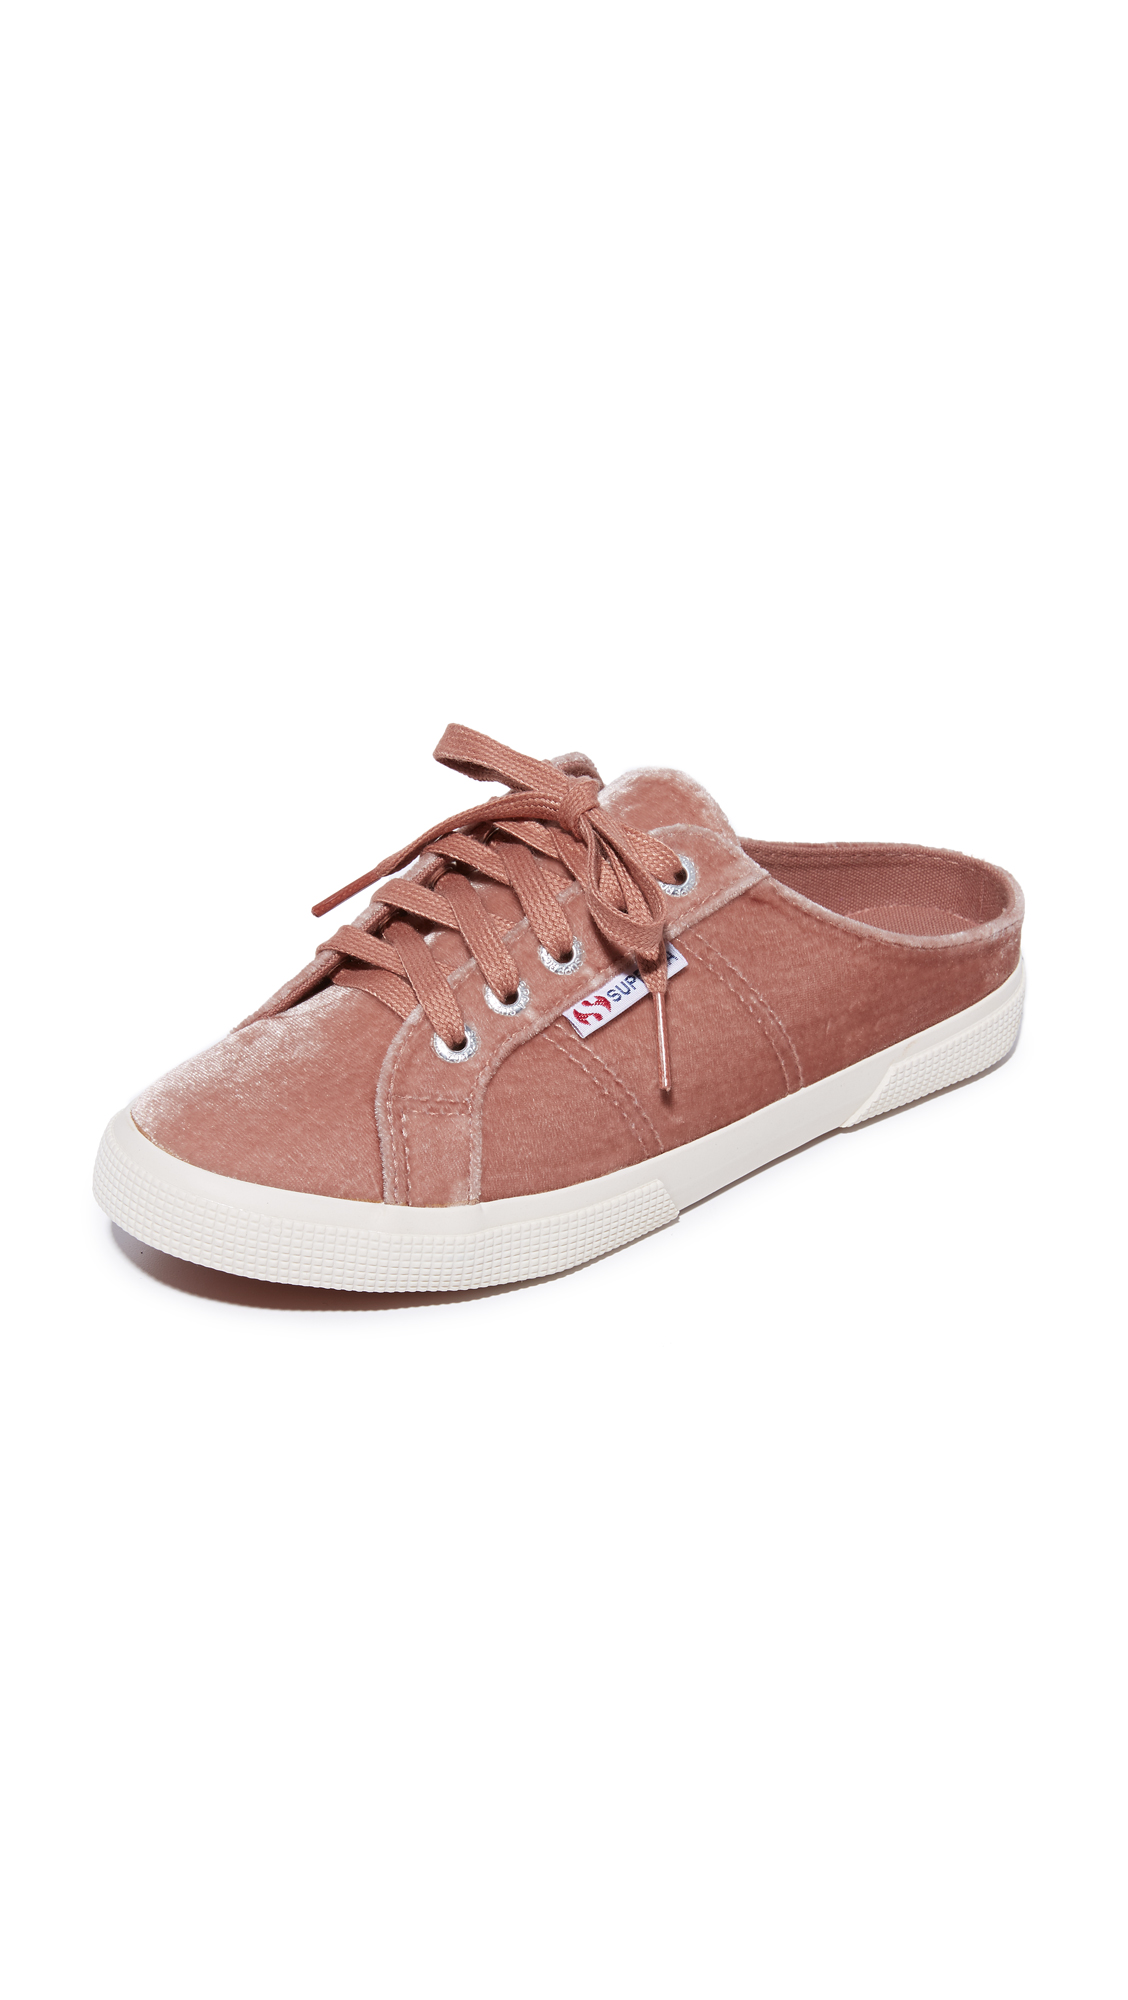 Superga 2288 Velvet Mule Sneakers - Blush